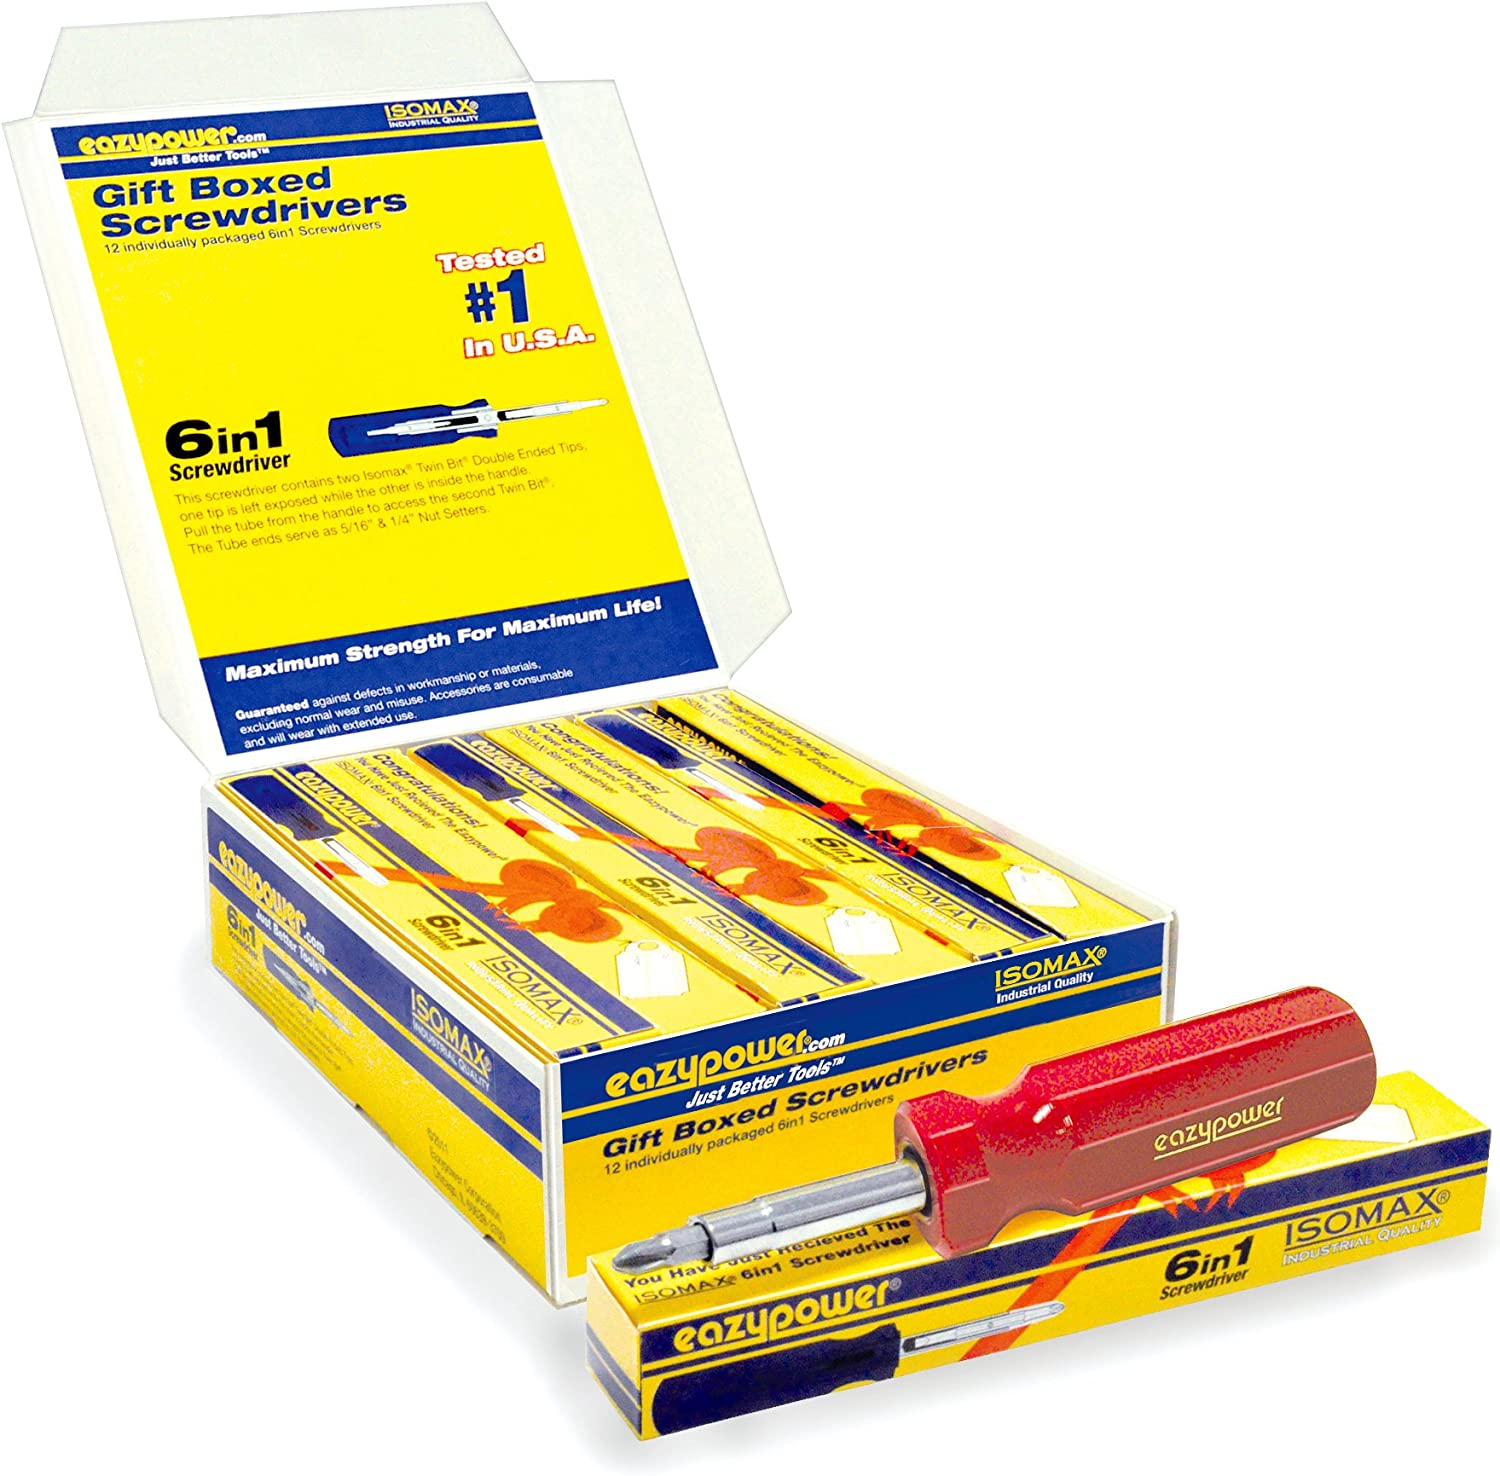 Eazypower 80623 12-Pack Isomax AAA Molded 6-in-1 Screwdriver Individually Gift Boxed Hot Colors